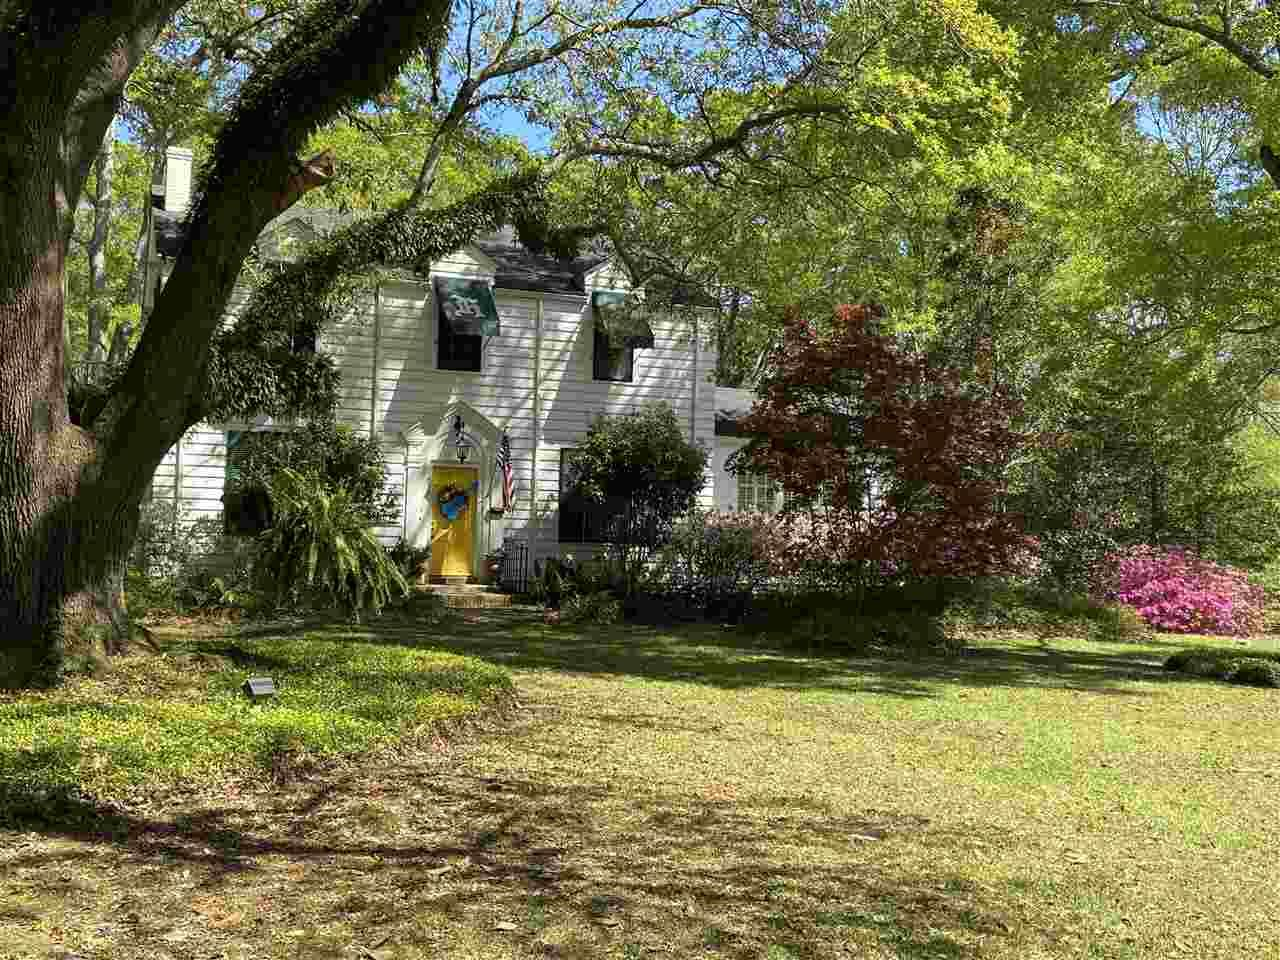 333 S EXTENSION ST, Hazlehurst, MS 39083 - MLS#: 336868